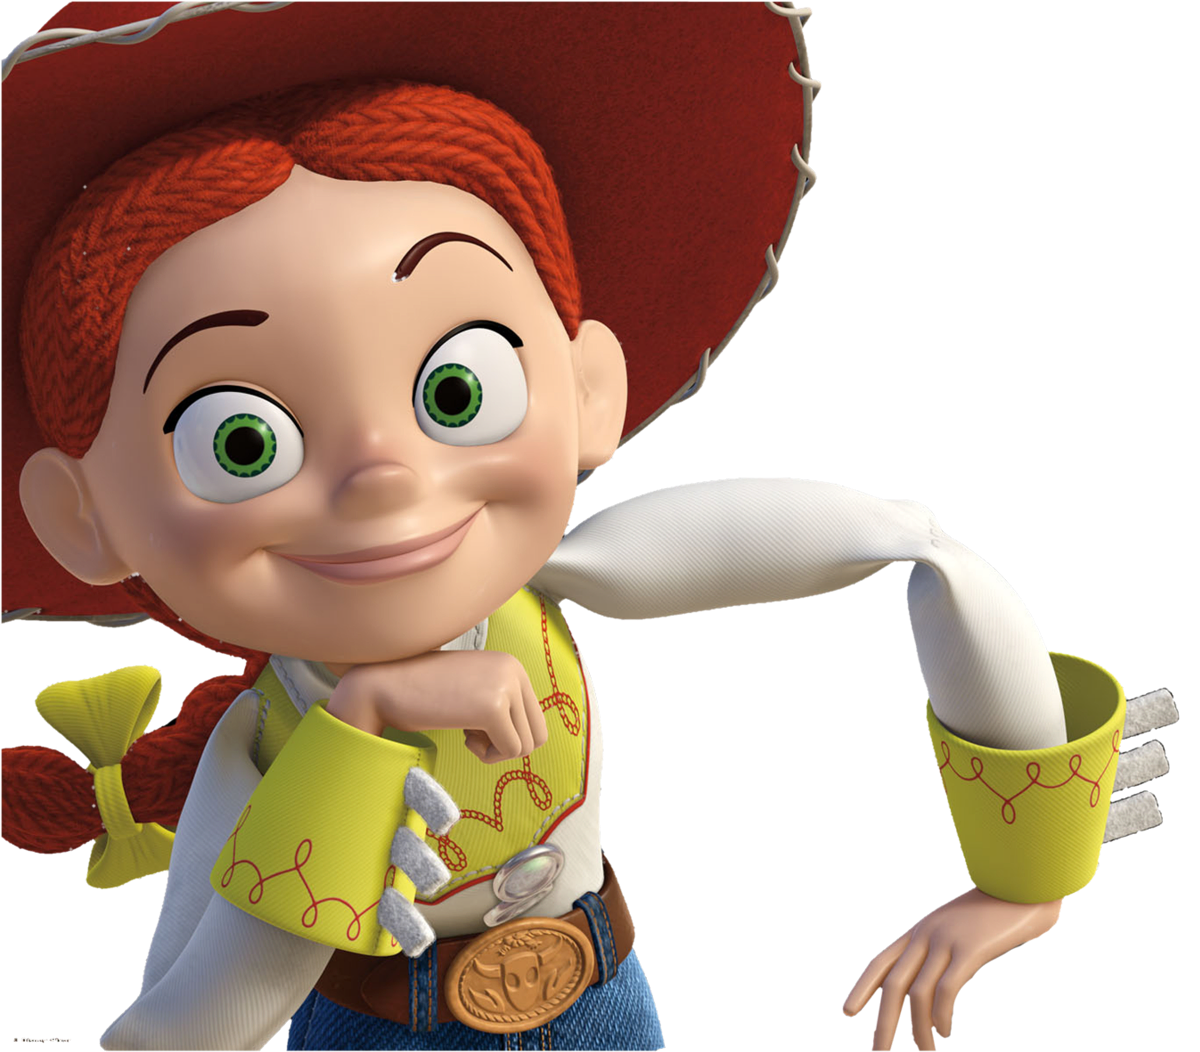 Image - Jessie from toy story 2.png - DisneyWiki